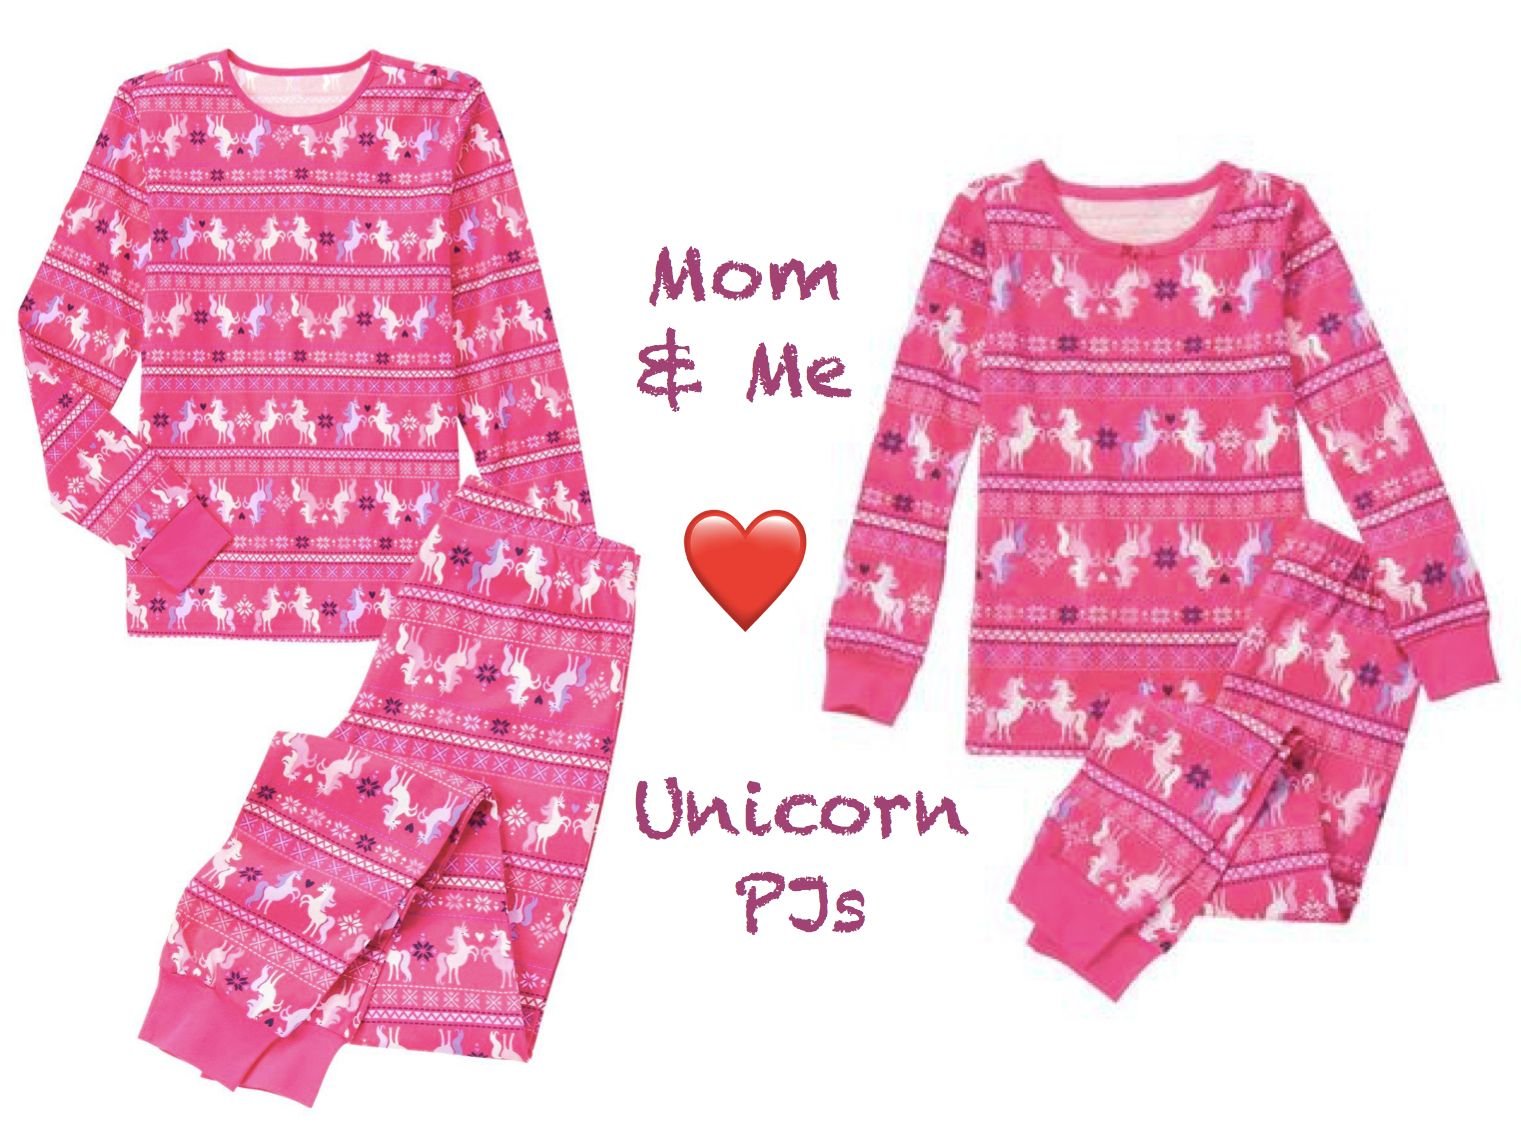 Mom and Me Love Unicorn PJs  c4a948c8b